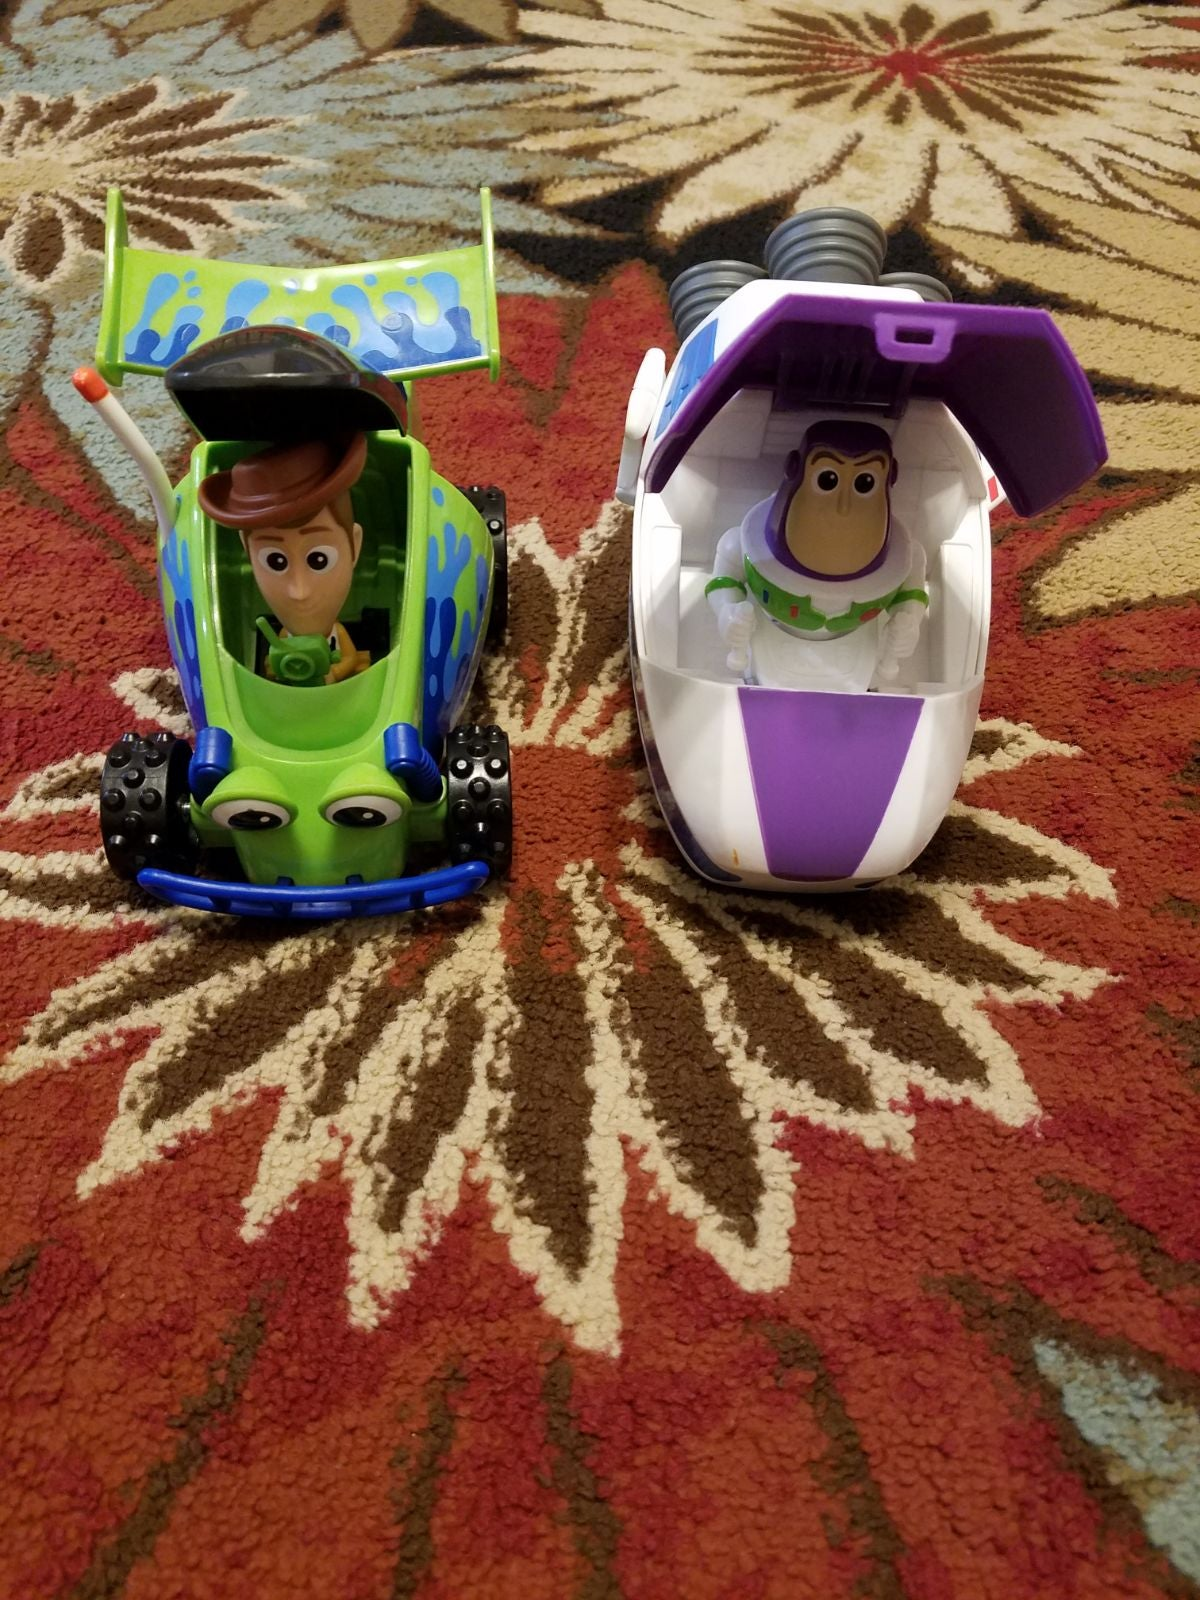 Toy Story Buzz Lightyear and Woody Cars